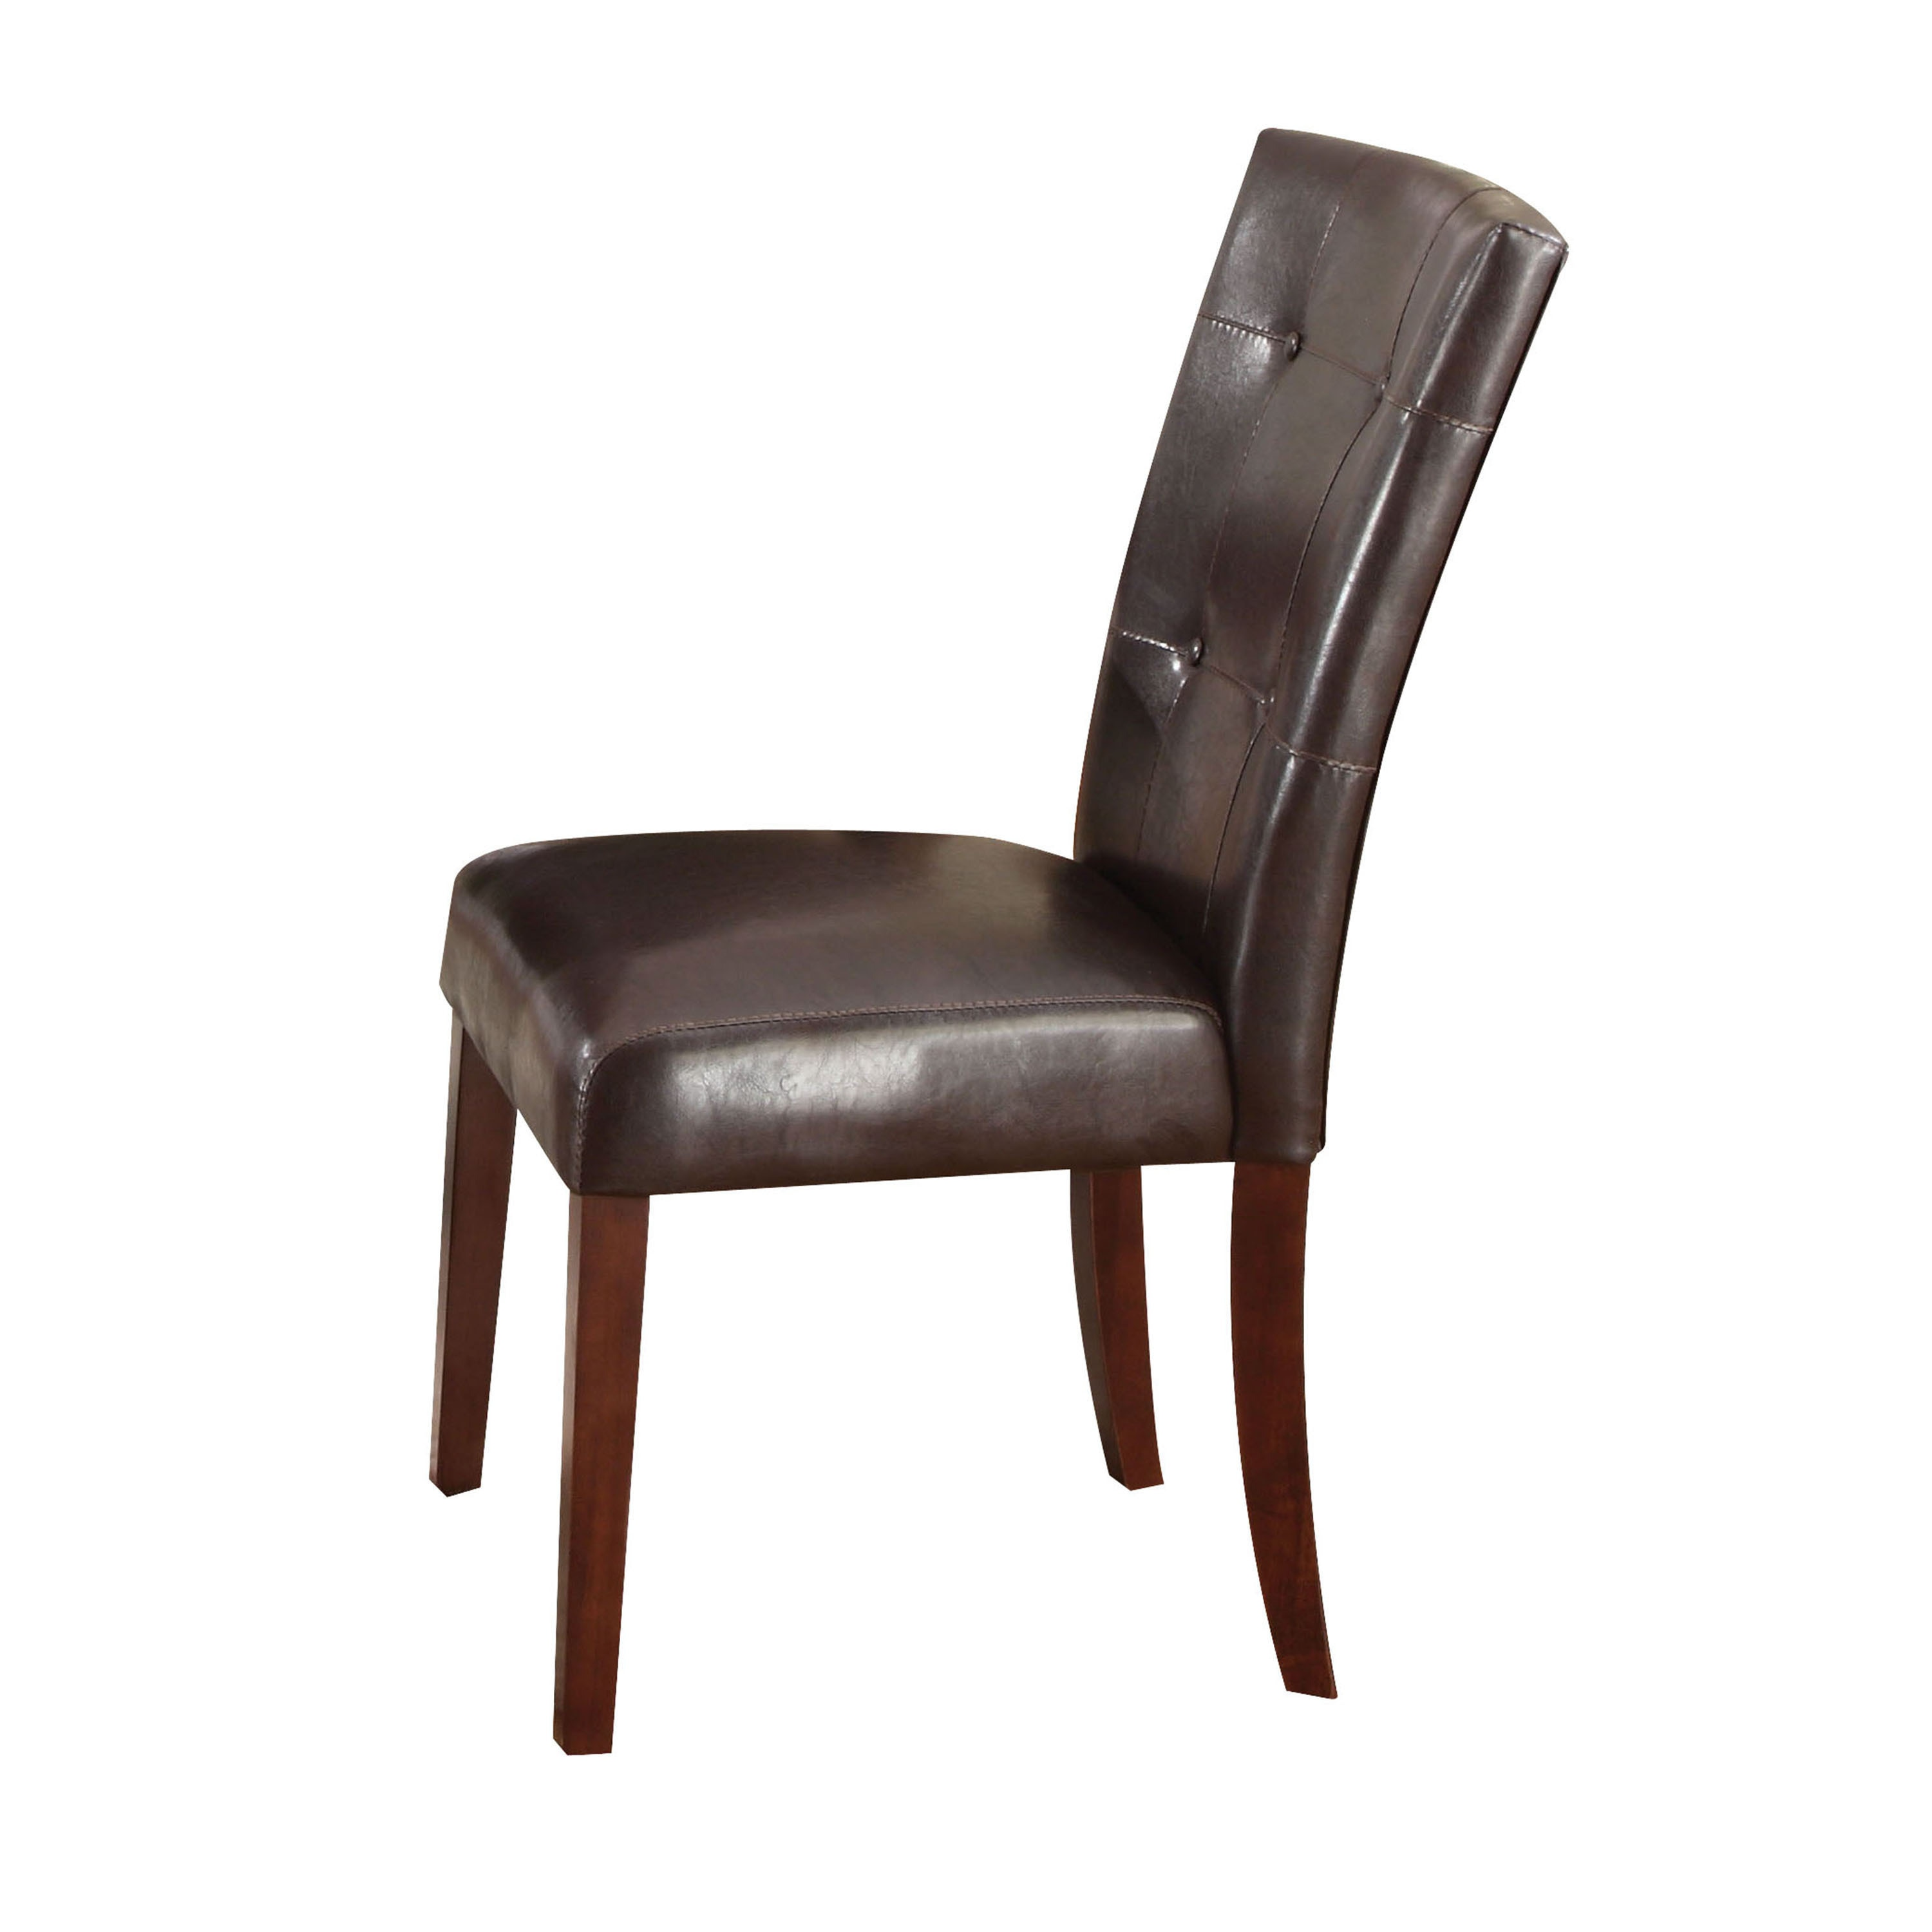 Shop acme furniture danville espresso pu upholstery walnut wood legs dining chairs set of 2 free shipping today overstock com 15030115